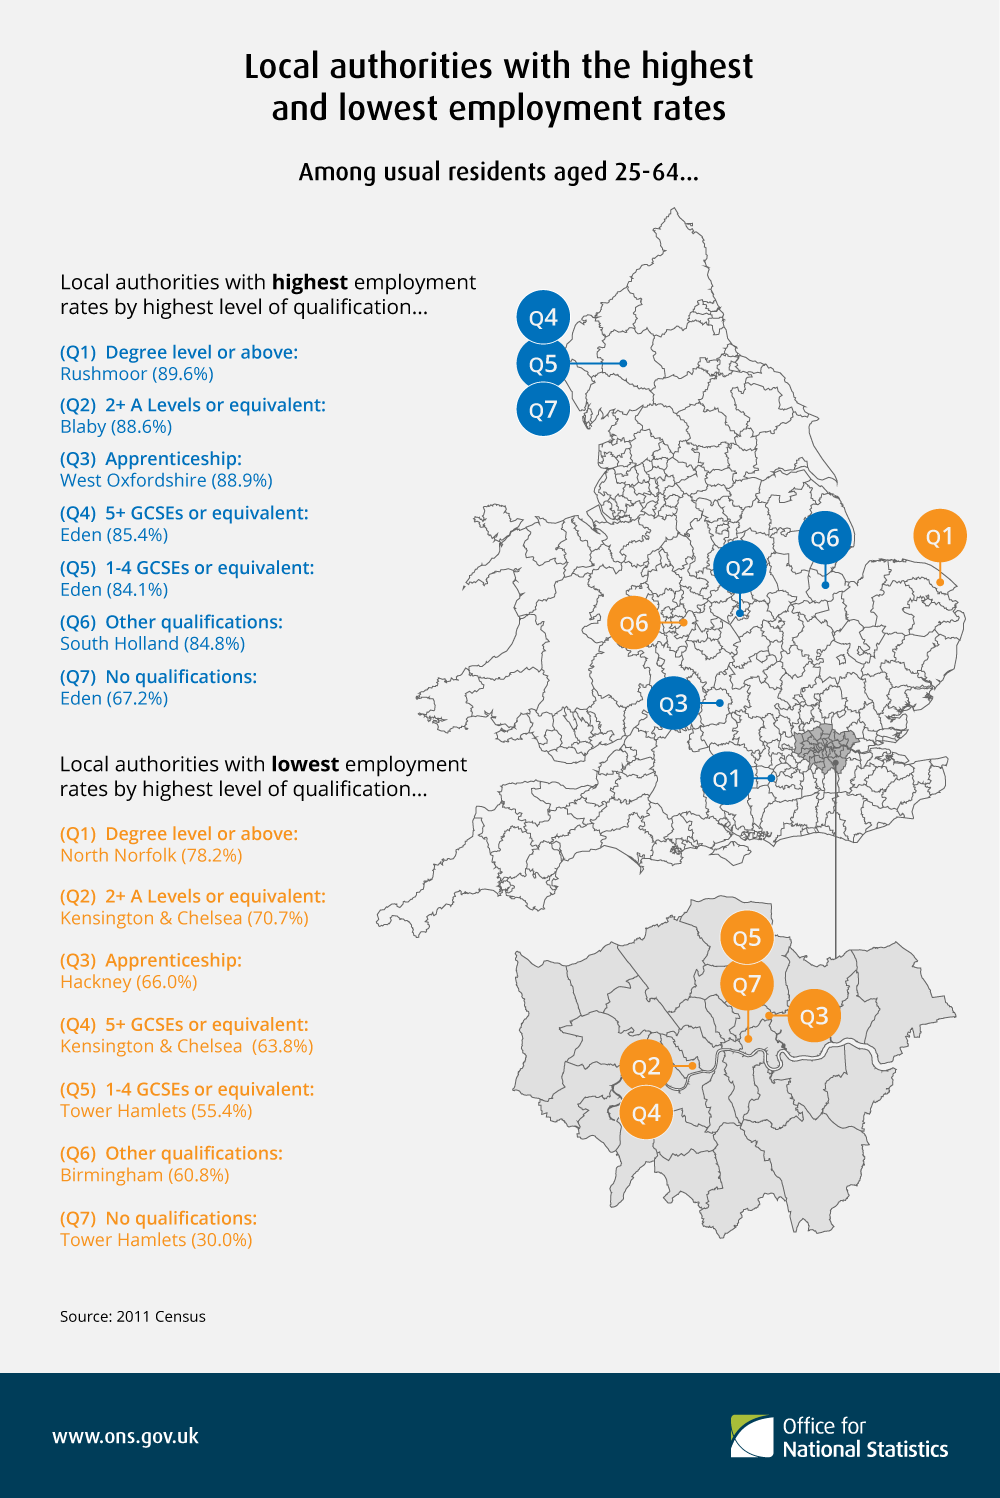 Local authorities with the highest and lowest employment rates